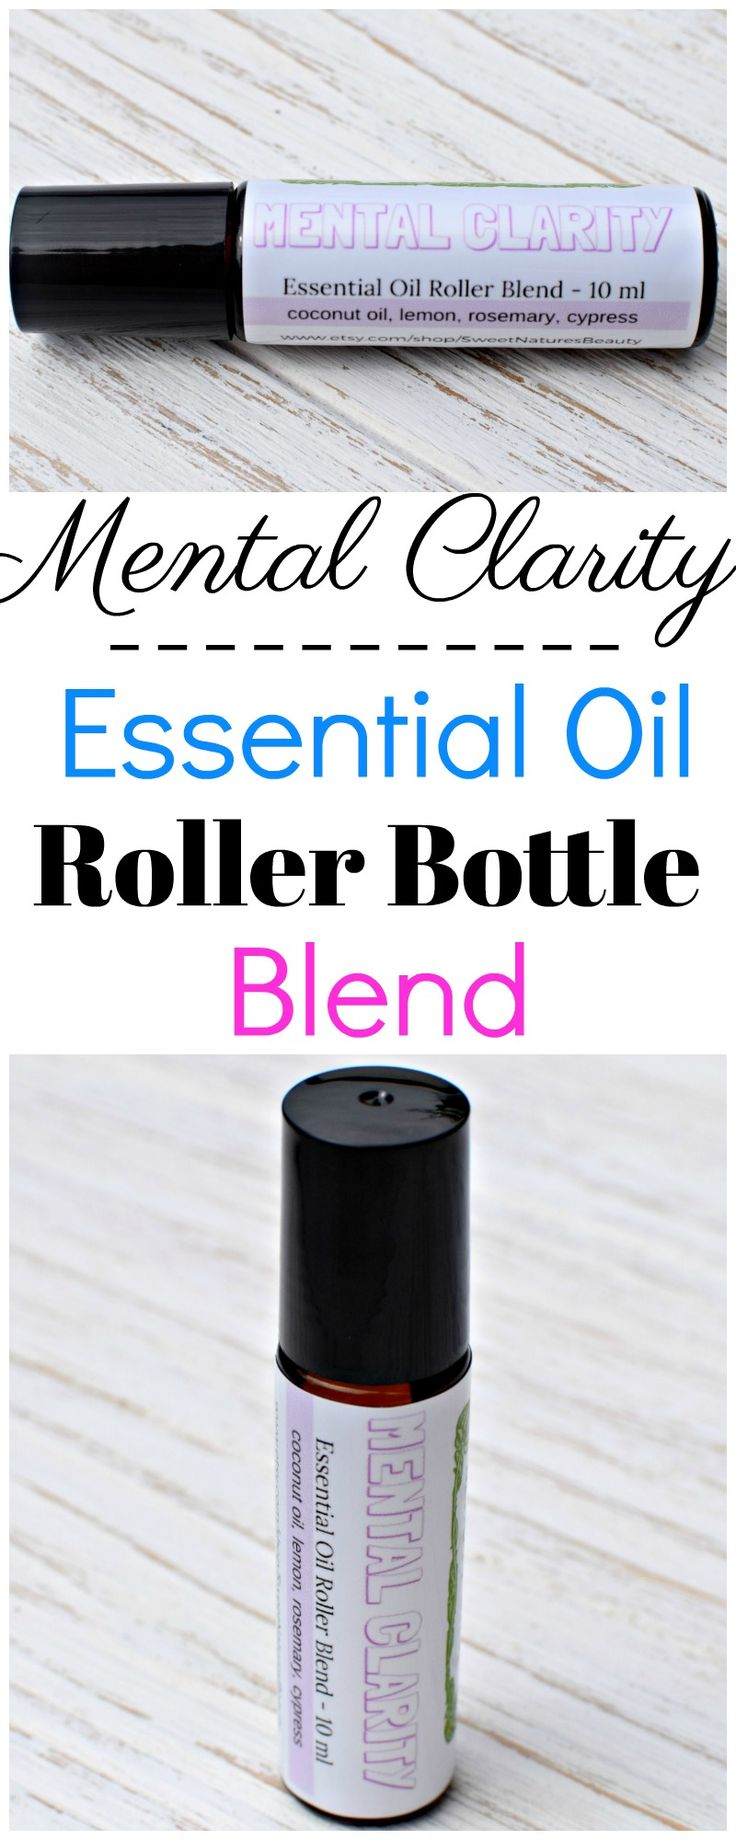 This essential oil roller bottle blend will help you find mental clarity once again. With natural calming properties and aromatherapy, you can't go wrong with this essential oil blend.